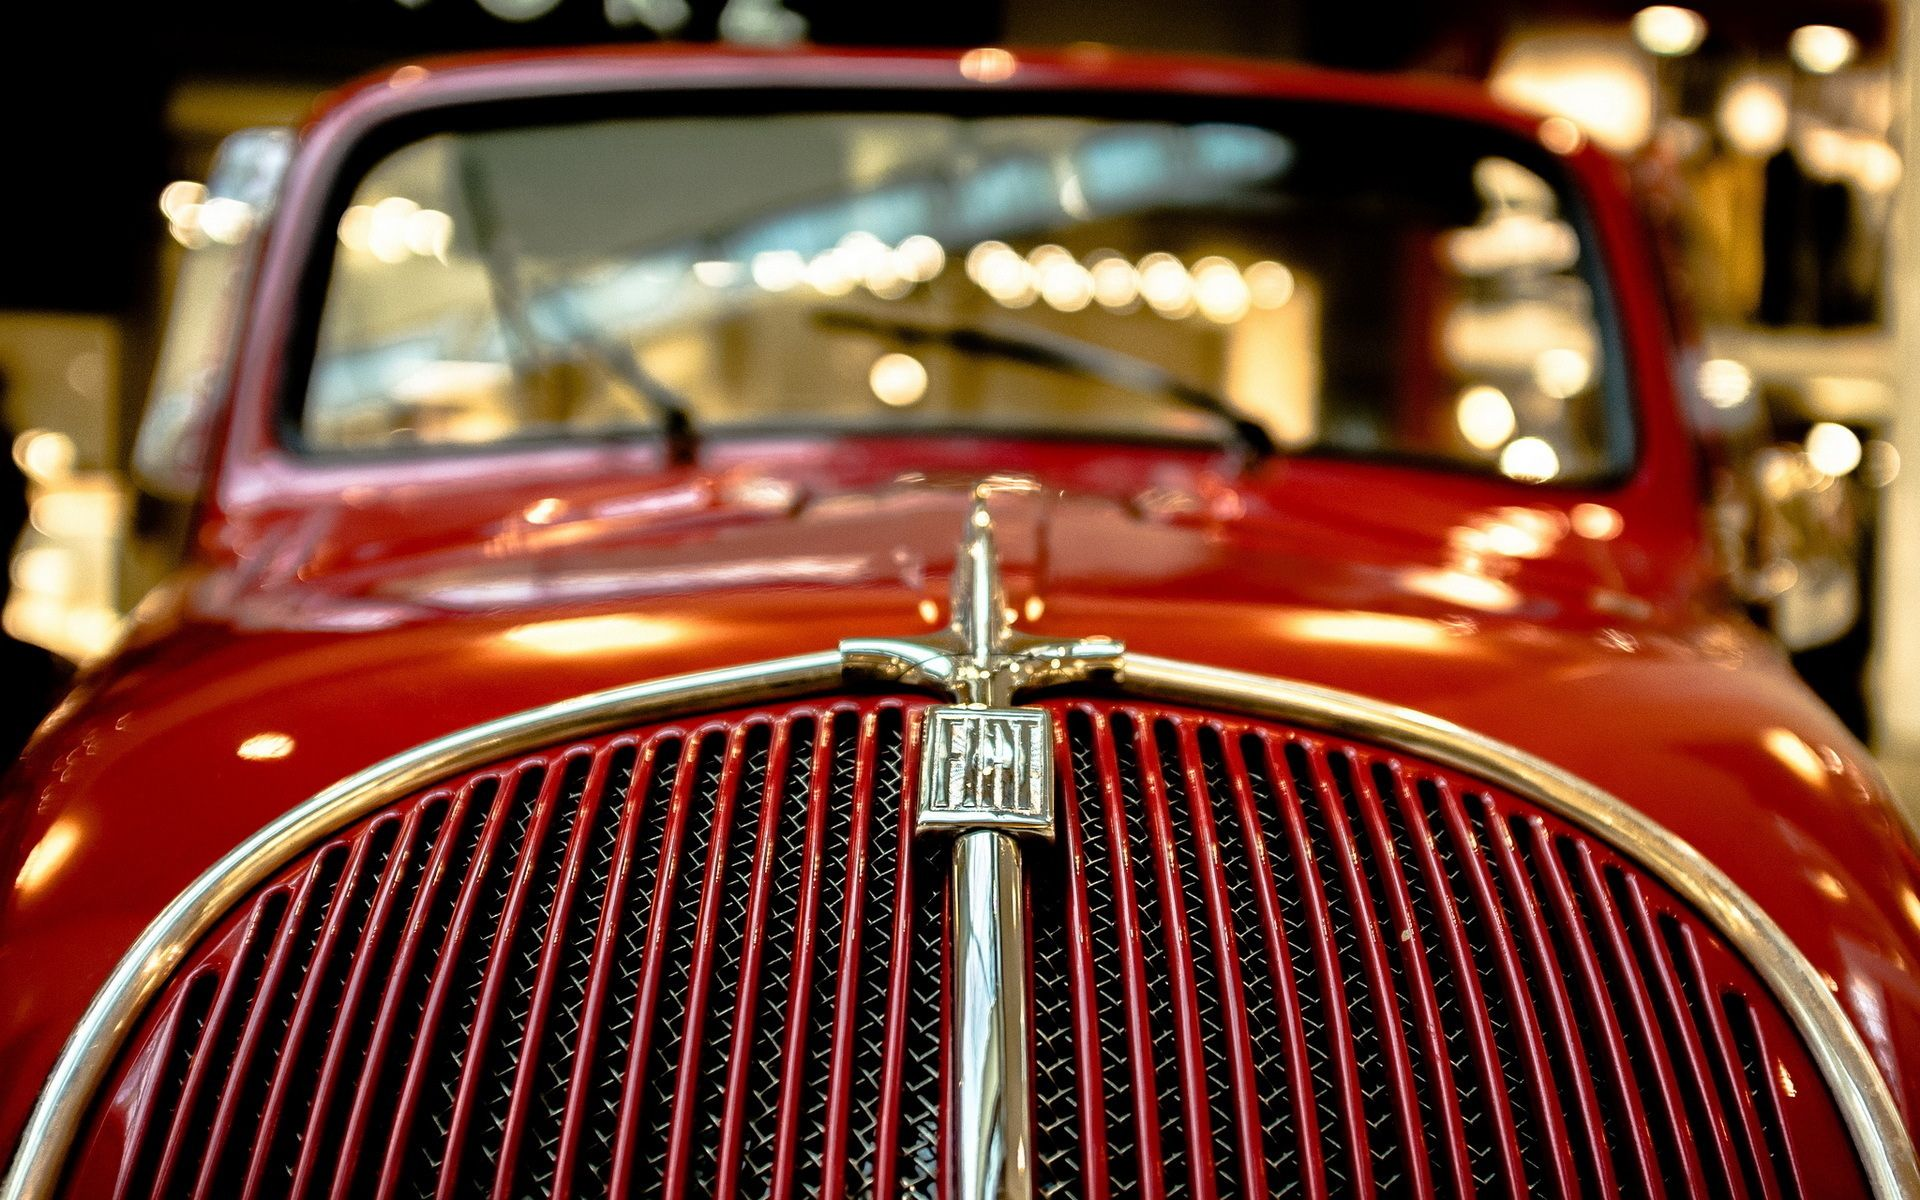 Pin by Paige Burks on Things I love | Pinterest | Fiat and Cars